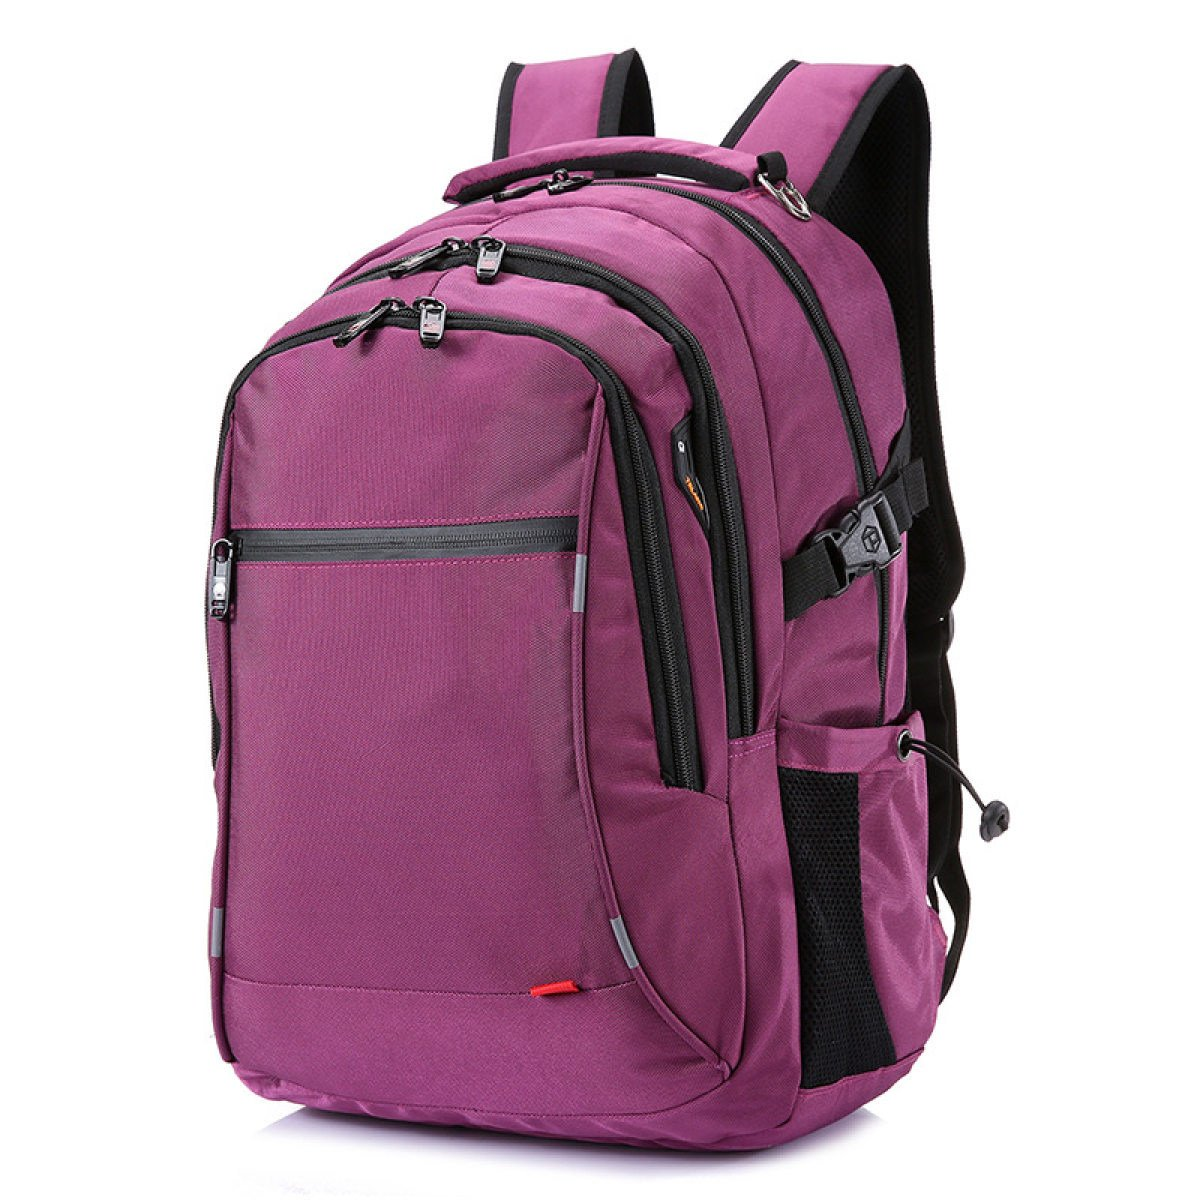 Purple3655L Outdoor Travel Backpack Casual Student Backpack 3655 Computer Backpack Hiking Camping Backpack Outdoor Sports